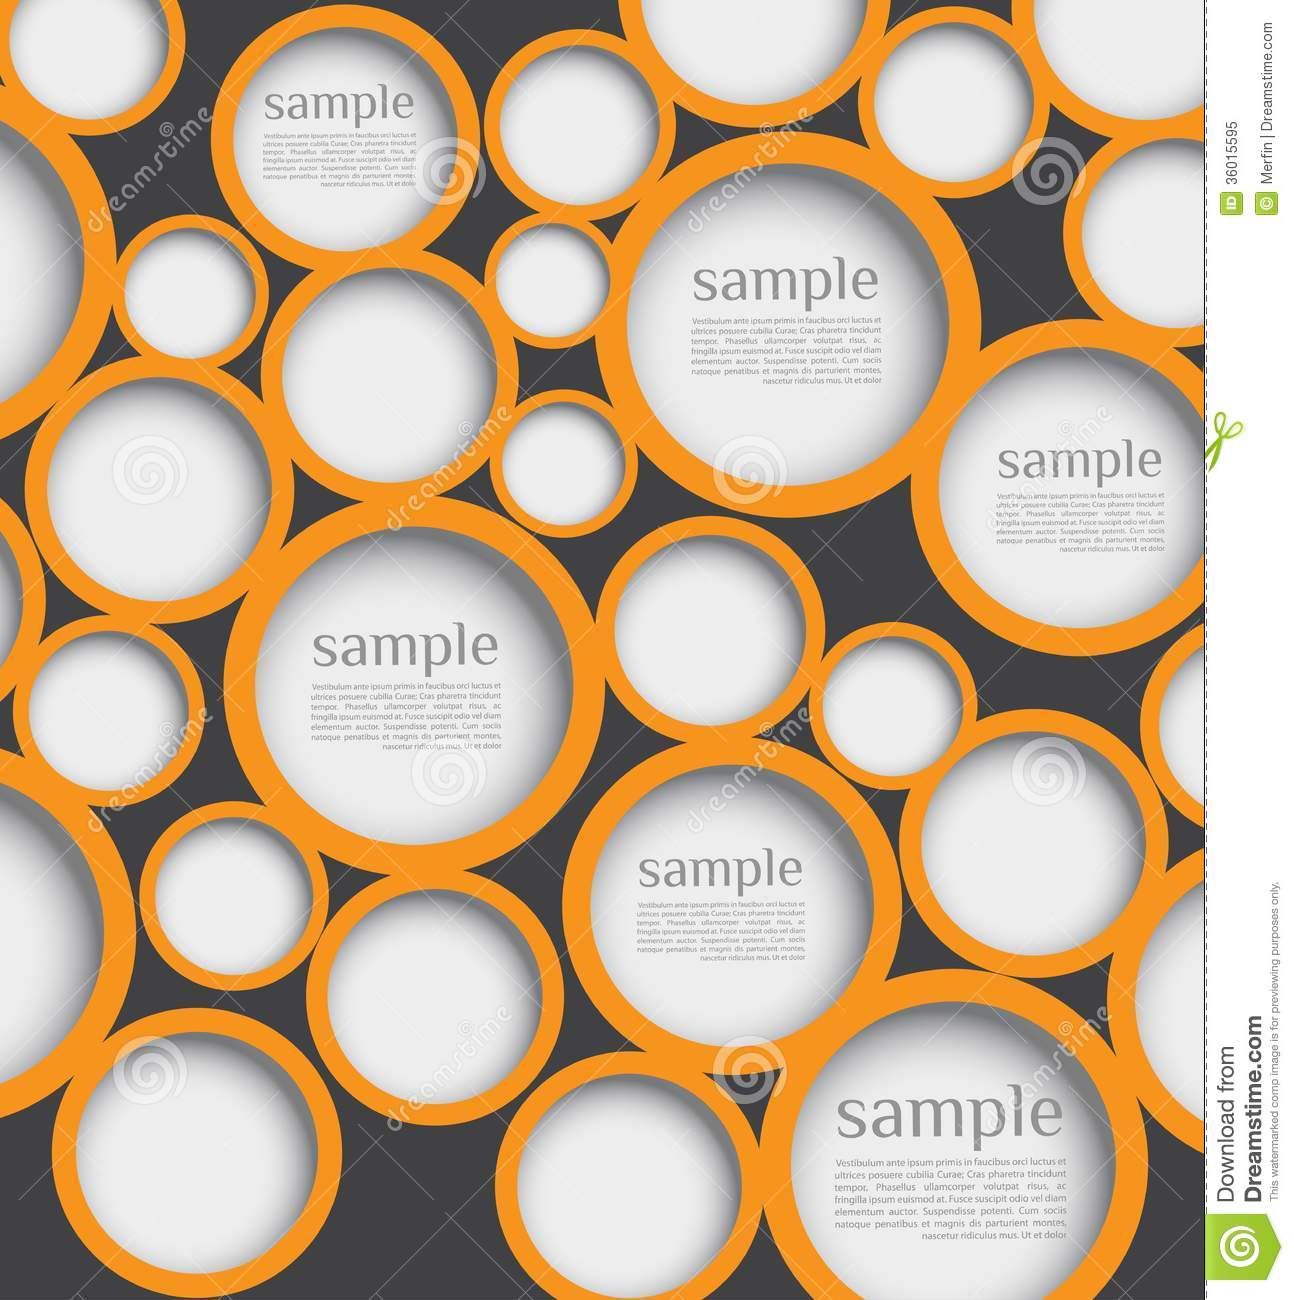 Abstract web design bubble stock illustration. Image of ...